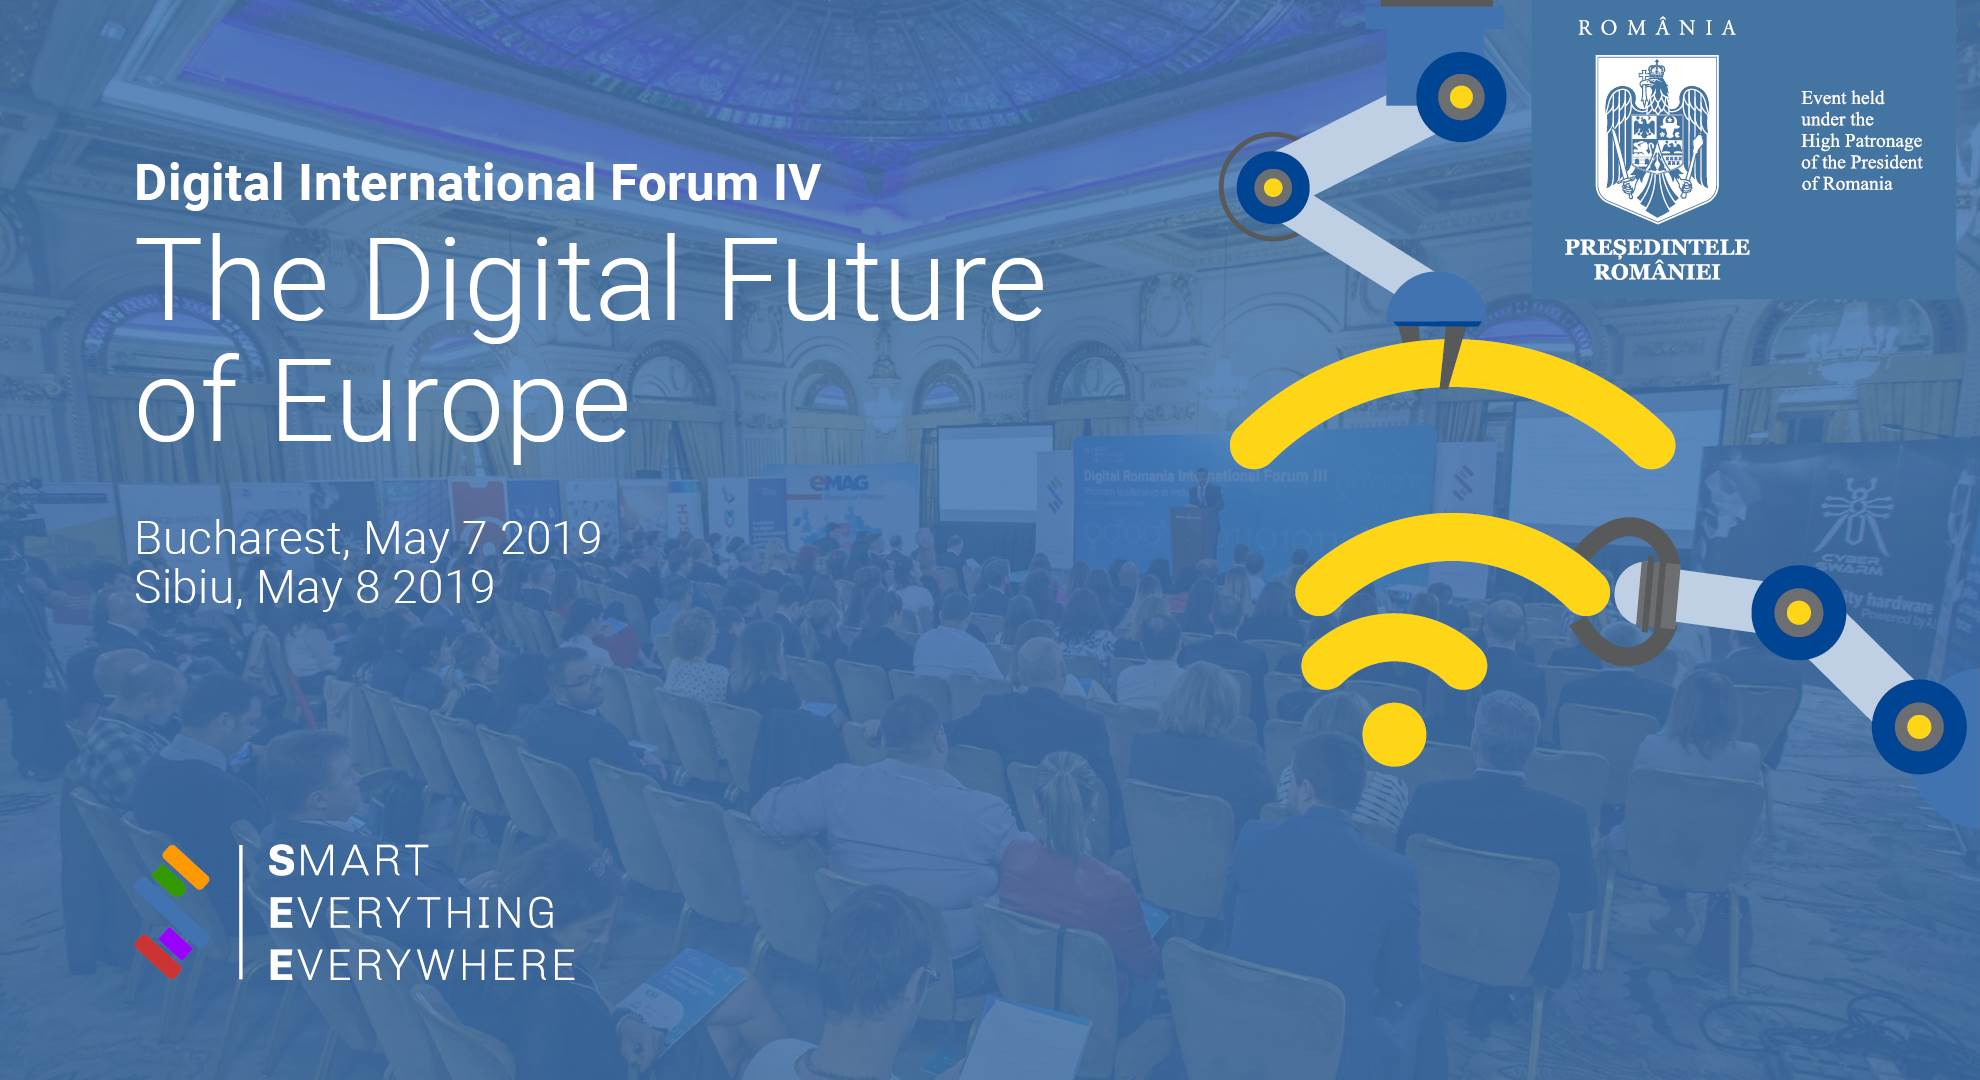 The Digital Future of Europe | Smart Everything Everywhere